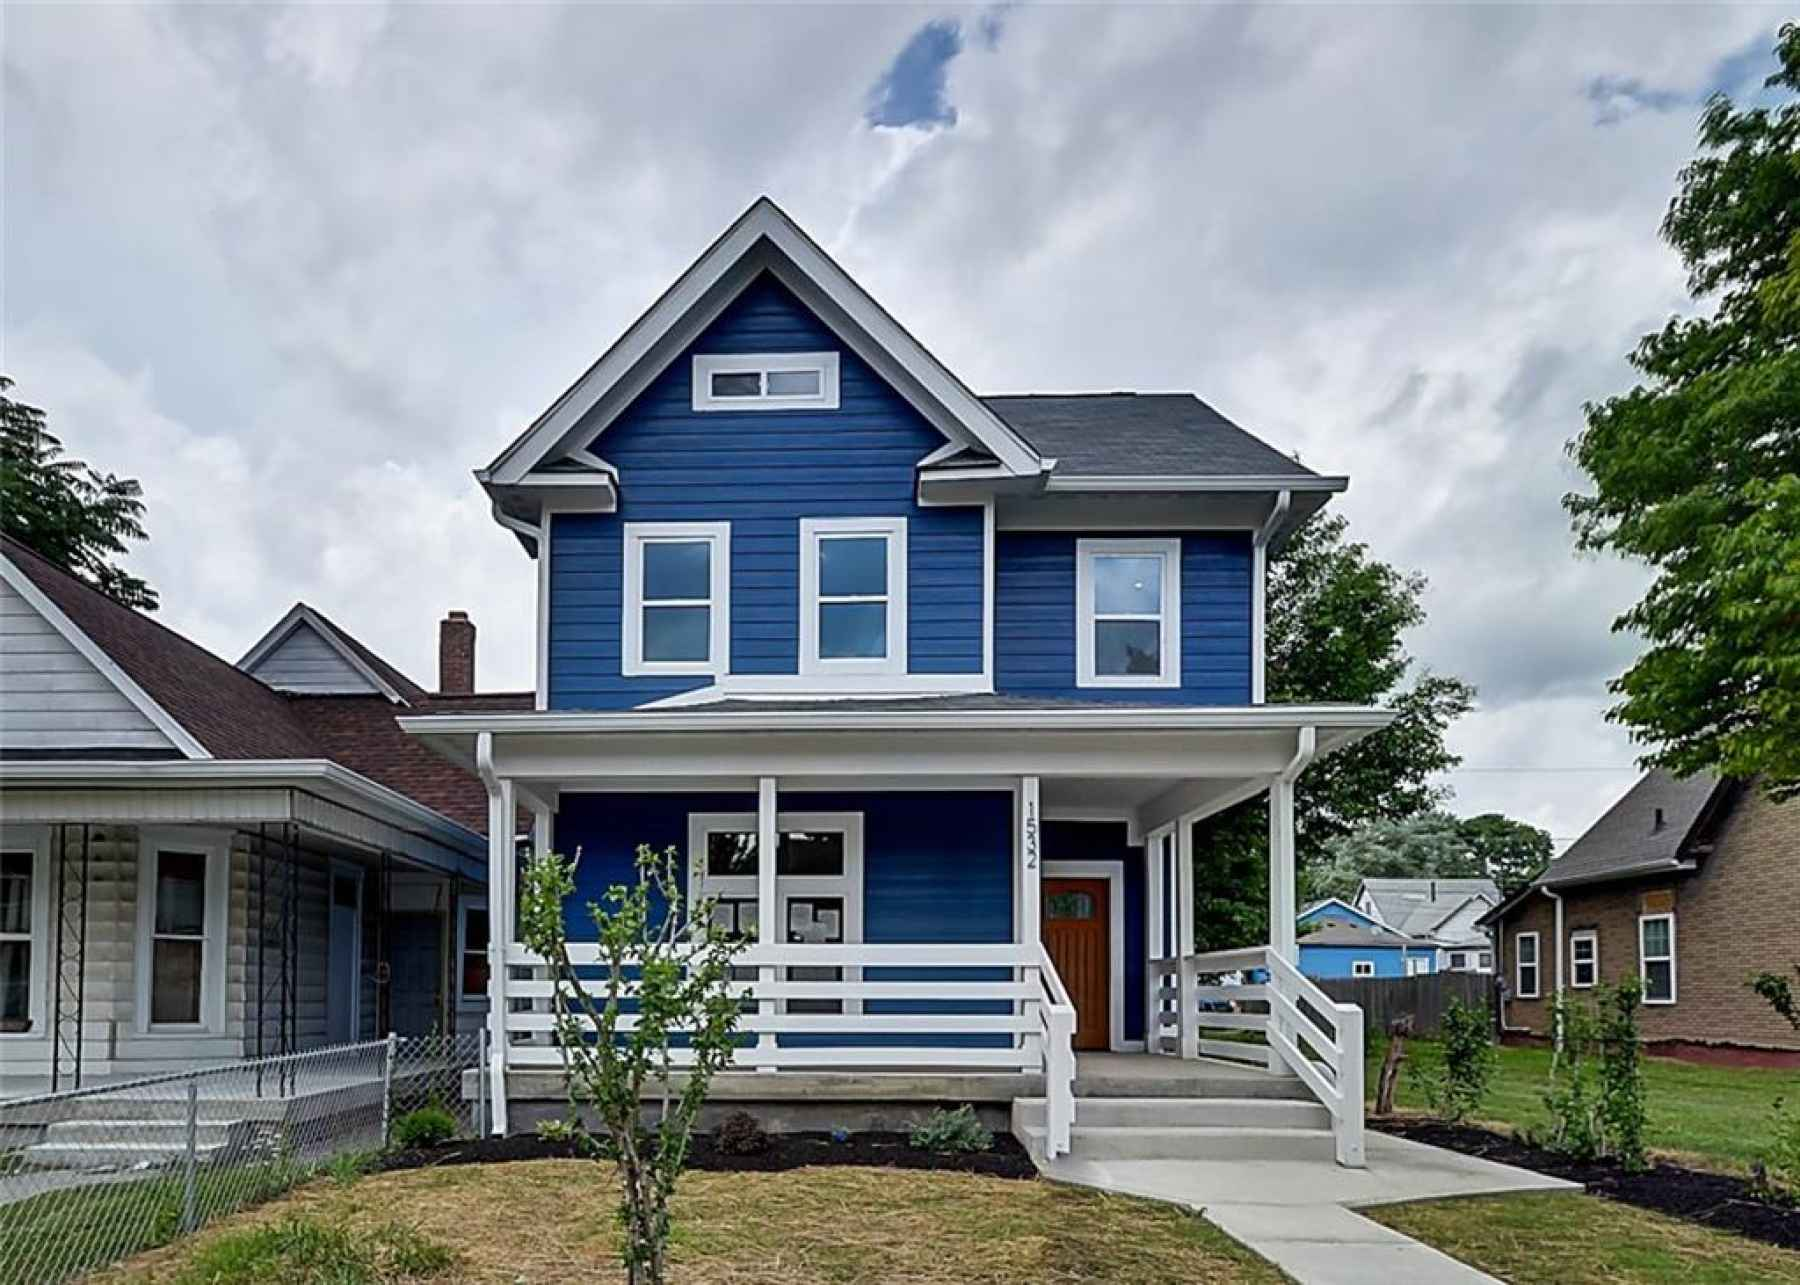 Front of home with wrap-around porch.